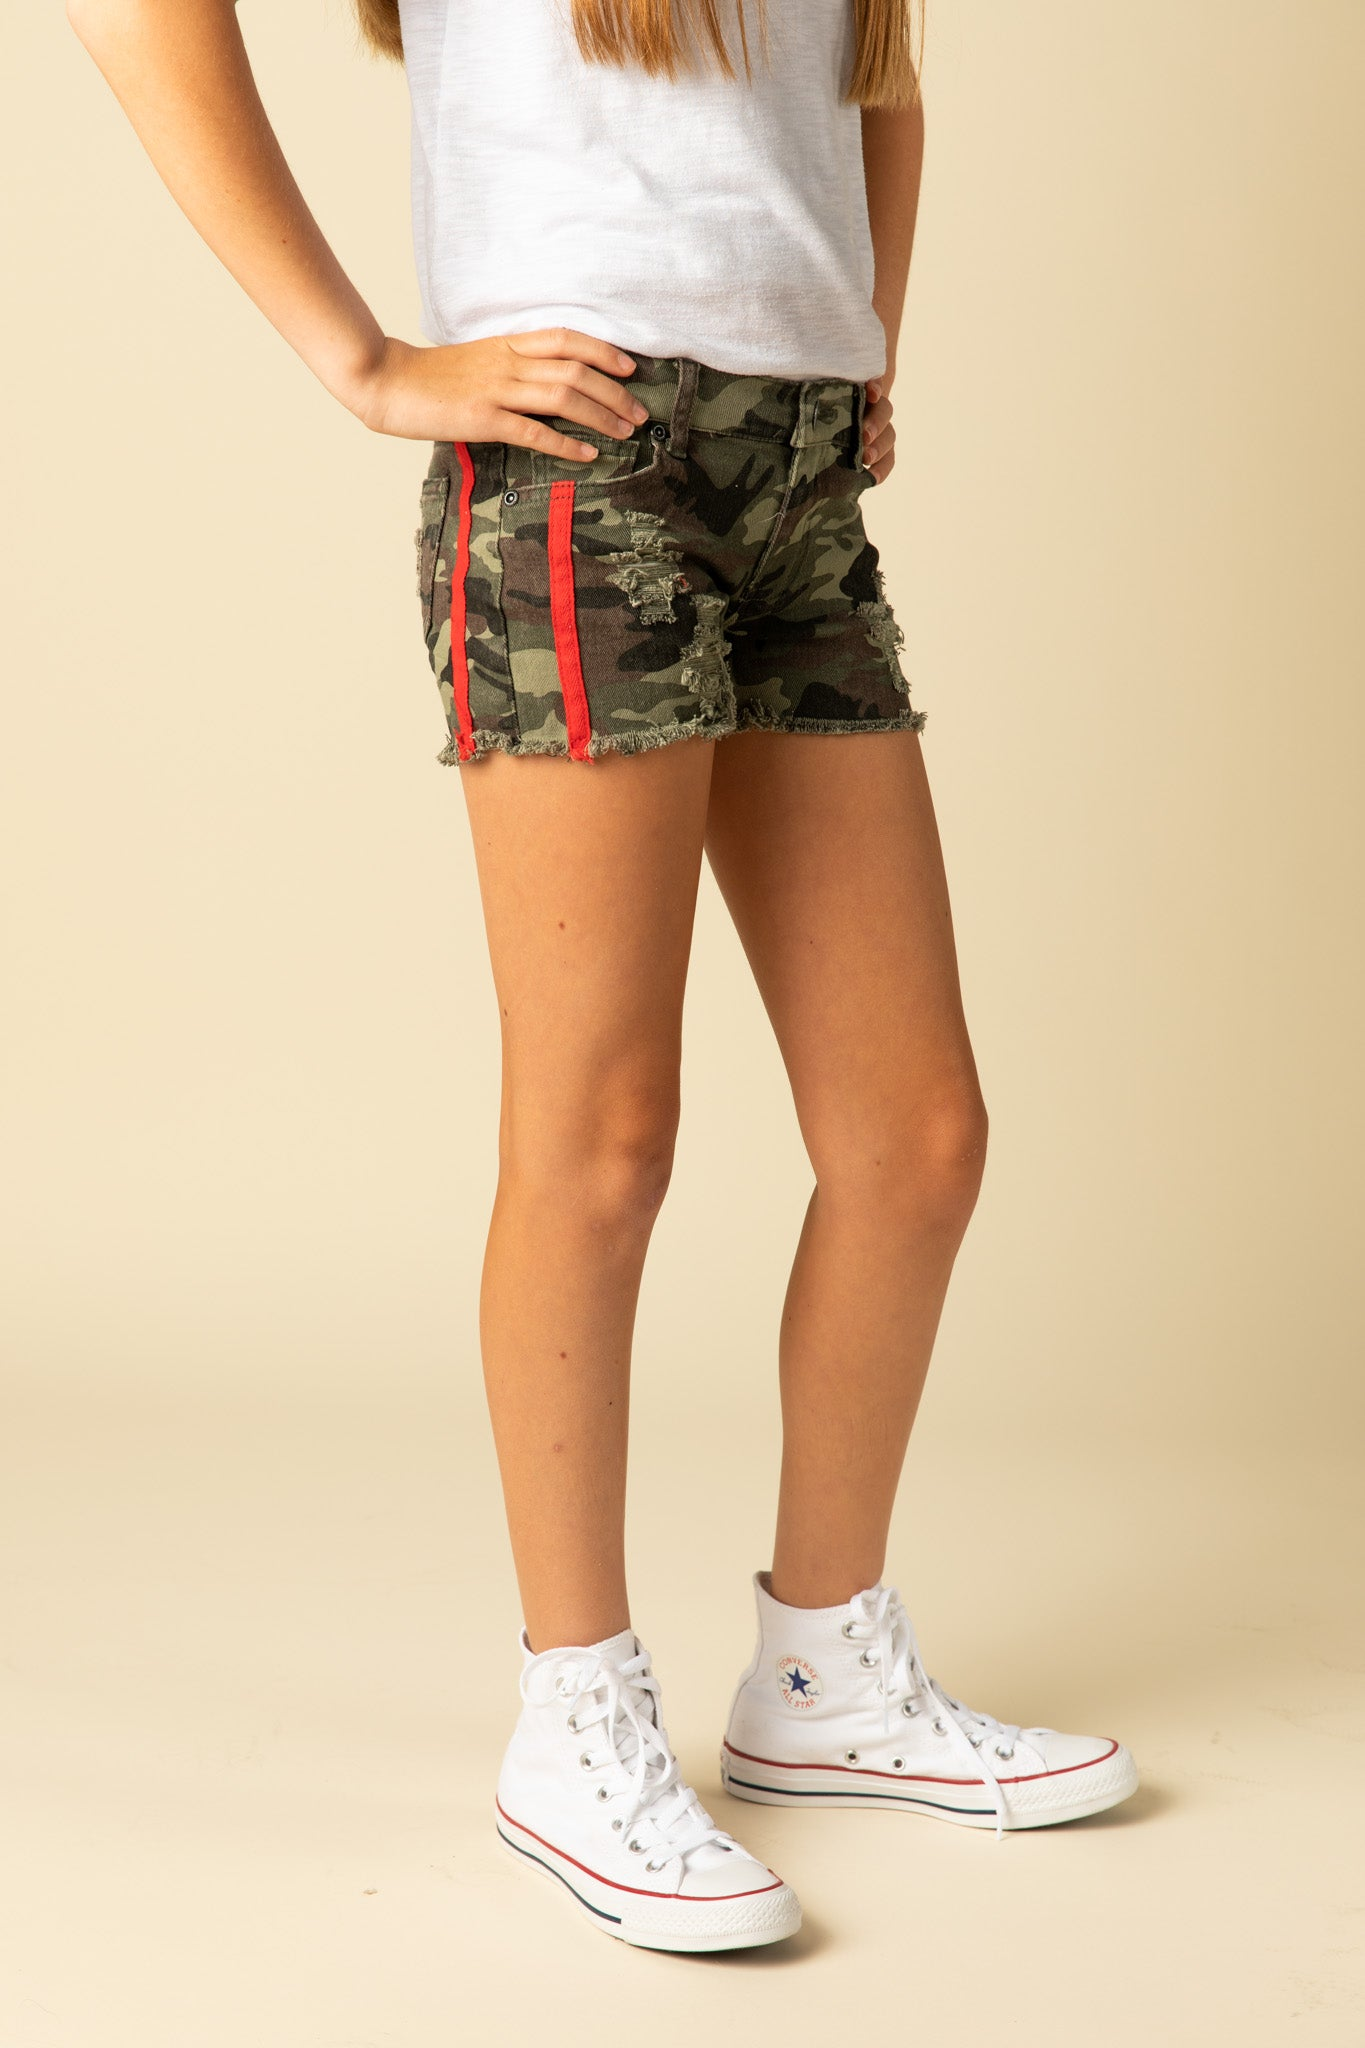 CAMO SHORTS WITH RED SIDE TAPE